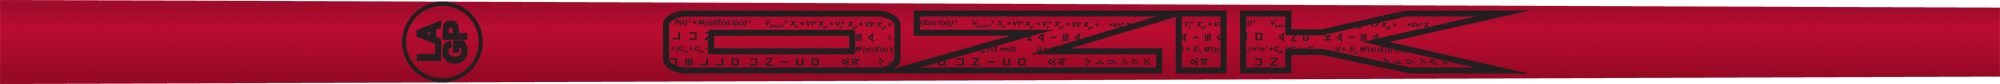 Ozik White Tie: Red Black Matte - Wood 40 R